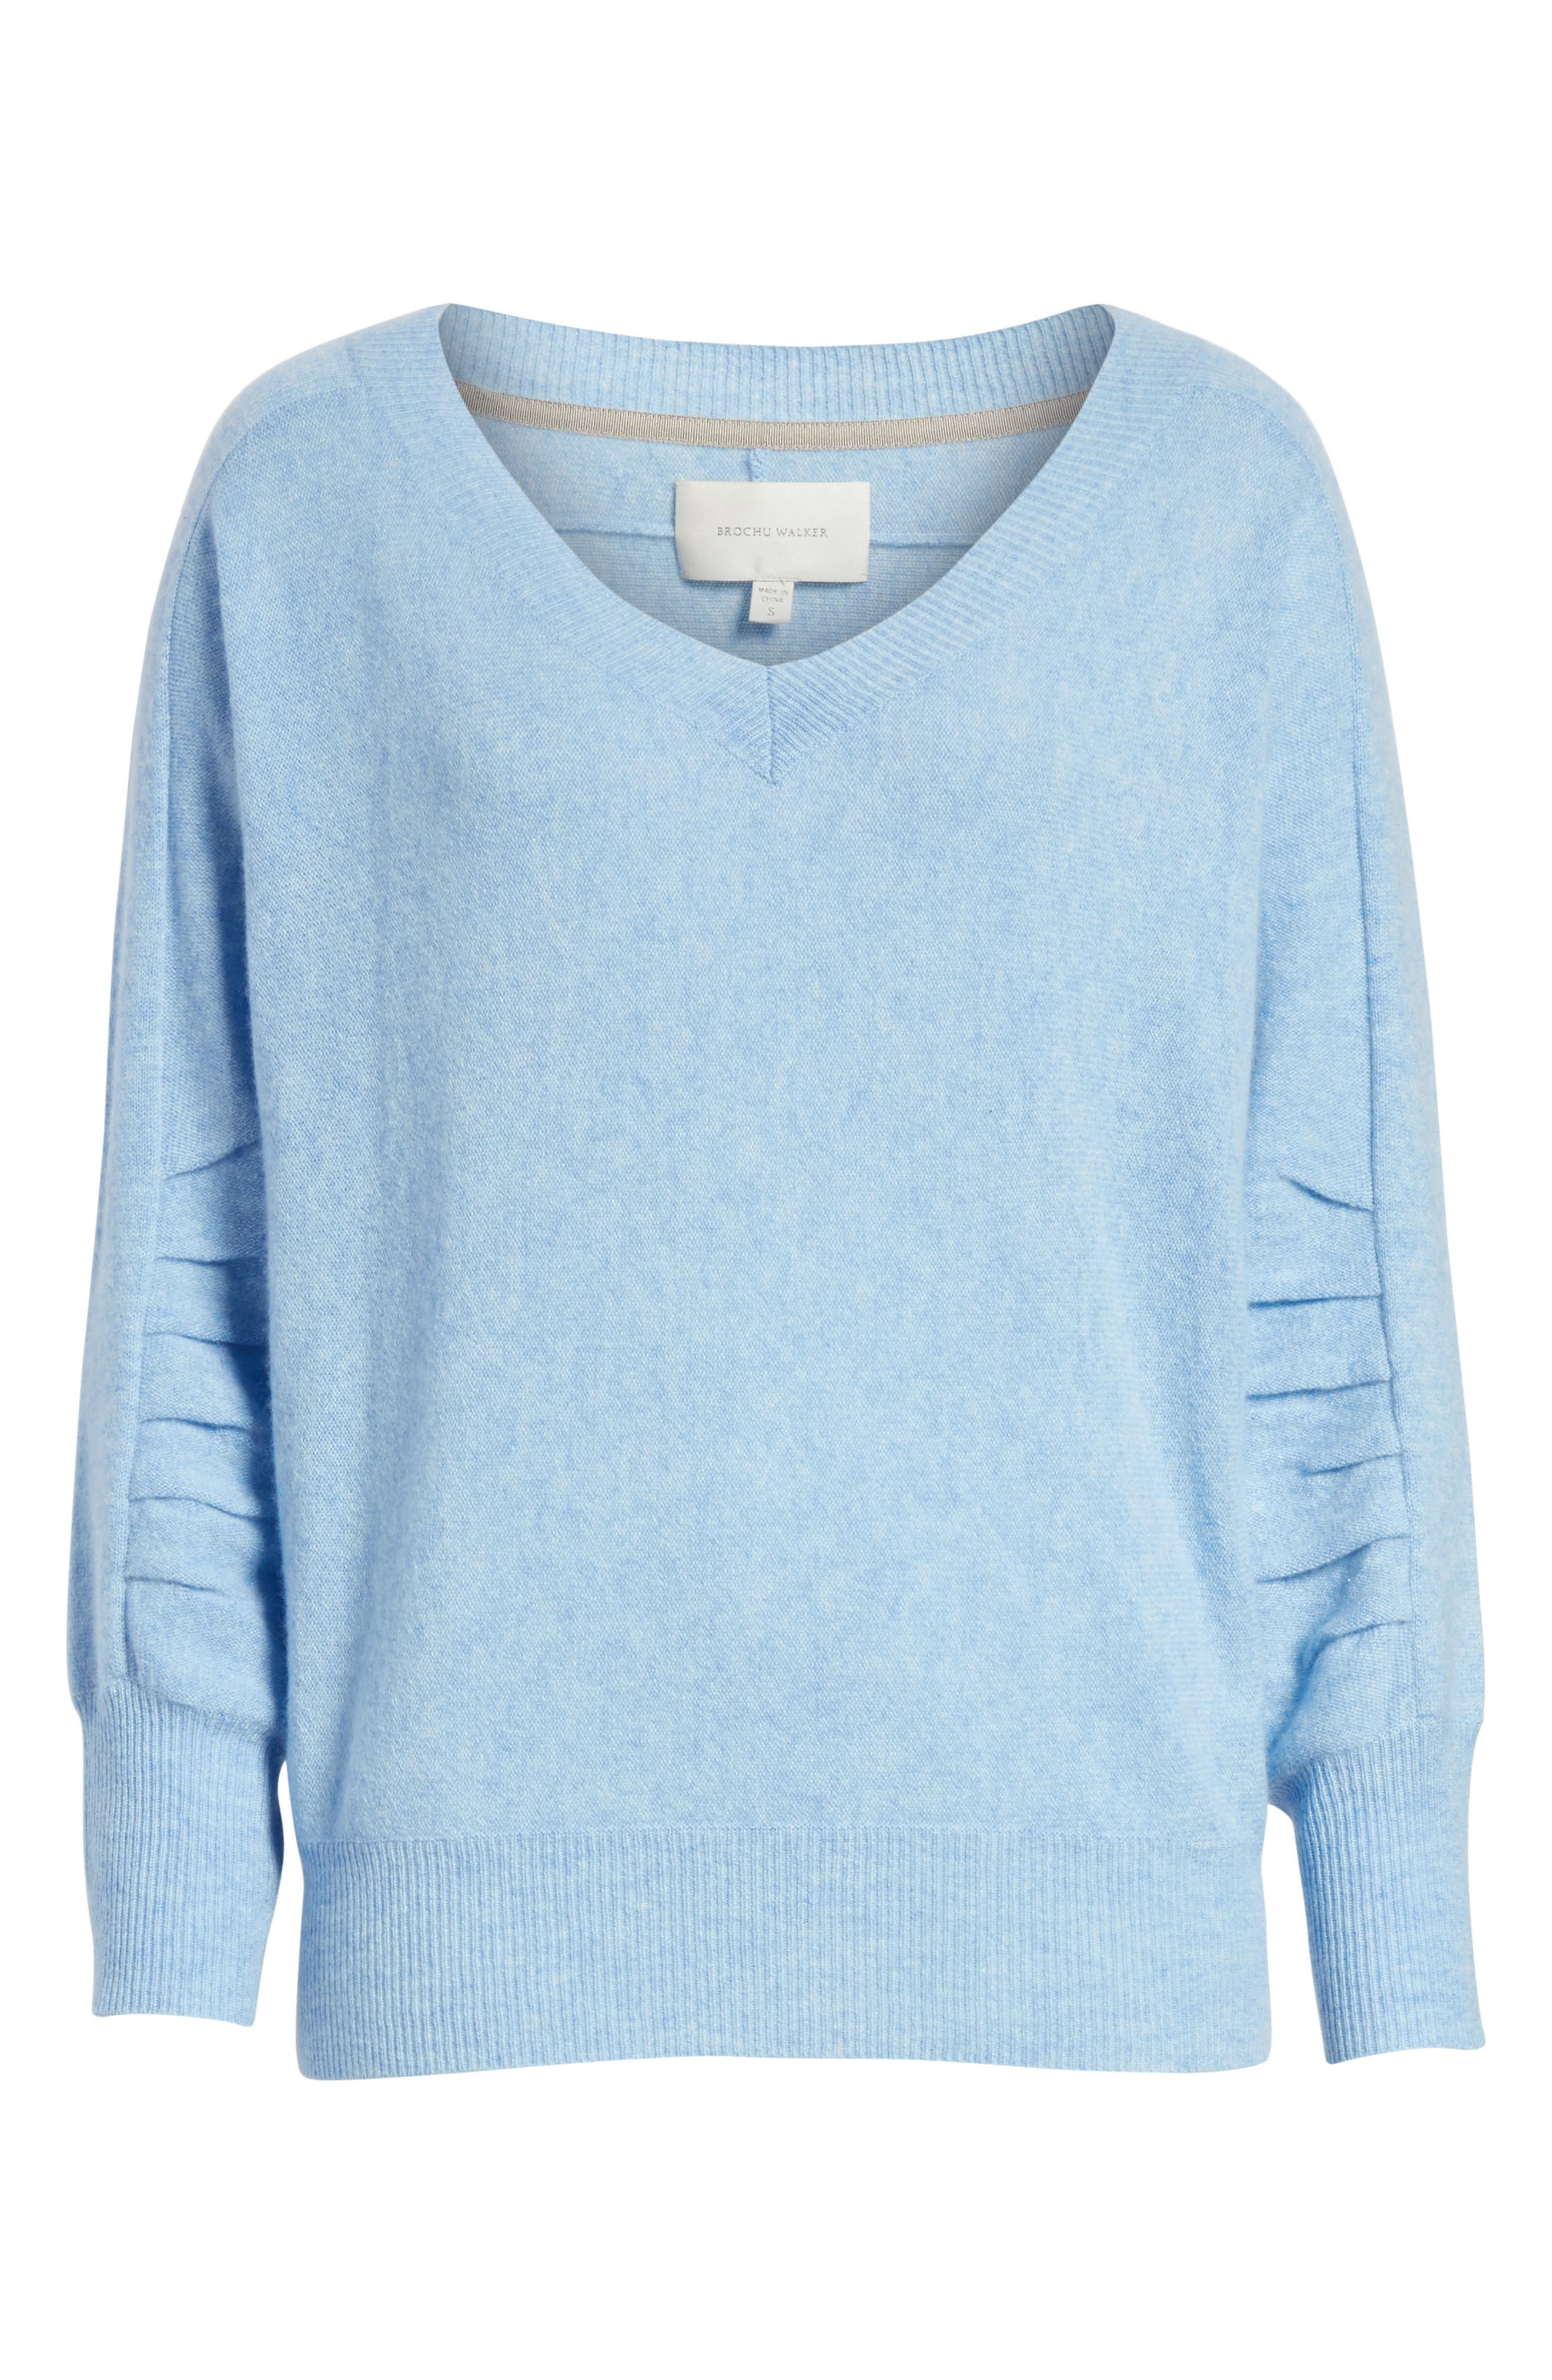 Weller Cashmere Sweater,                             Alternate thumbnail 12, color,